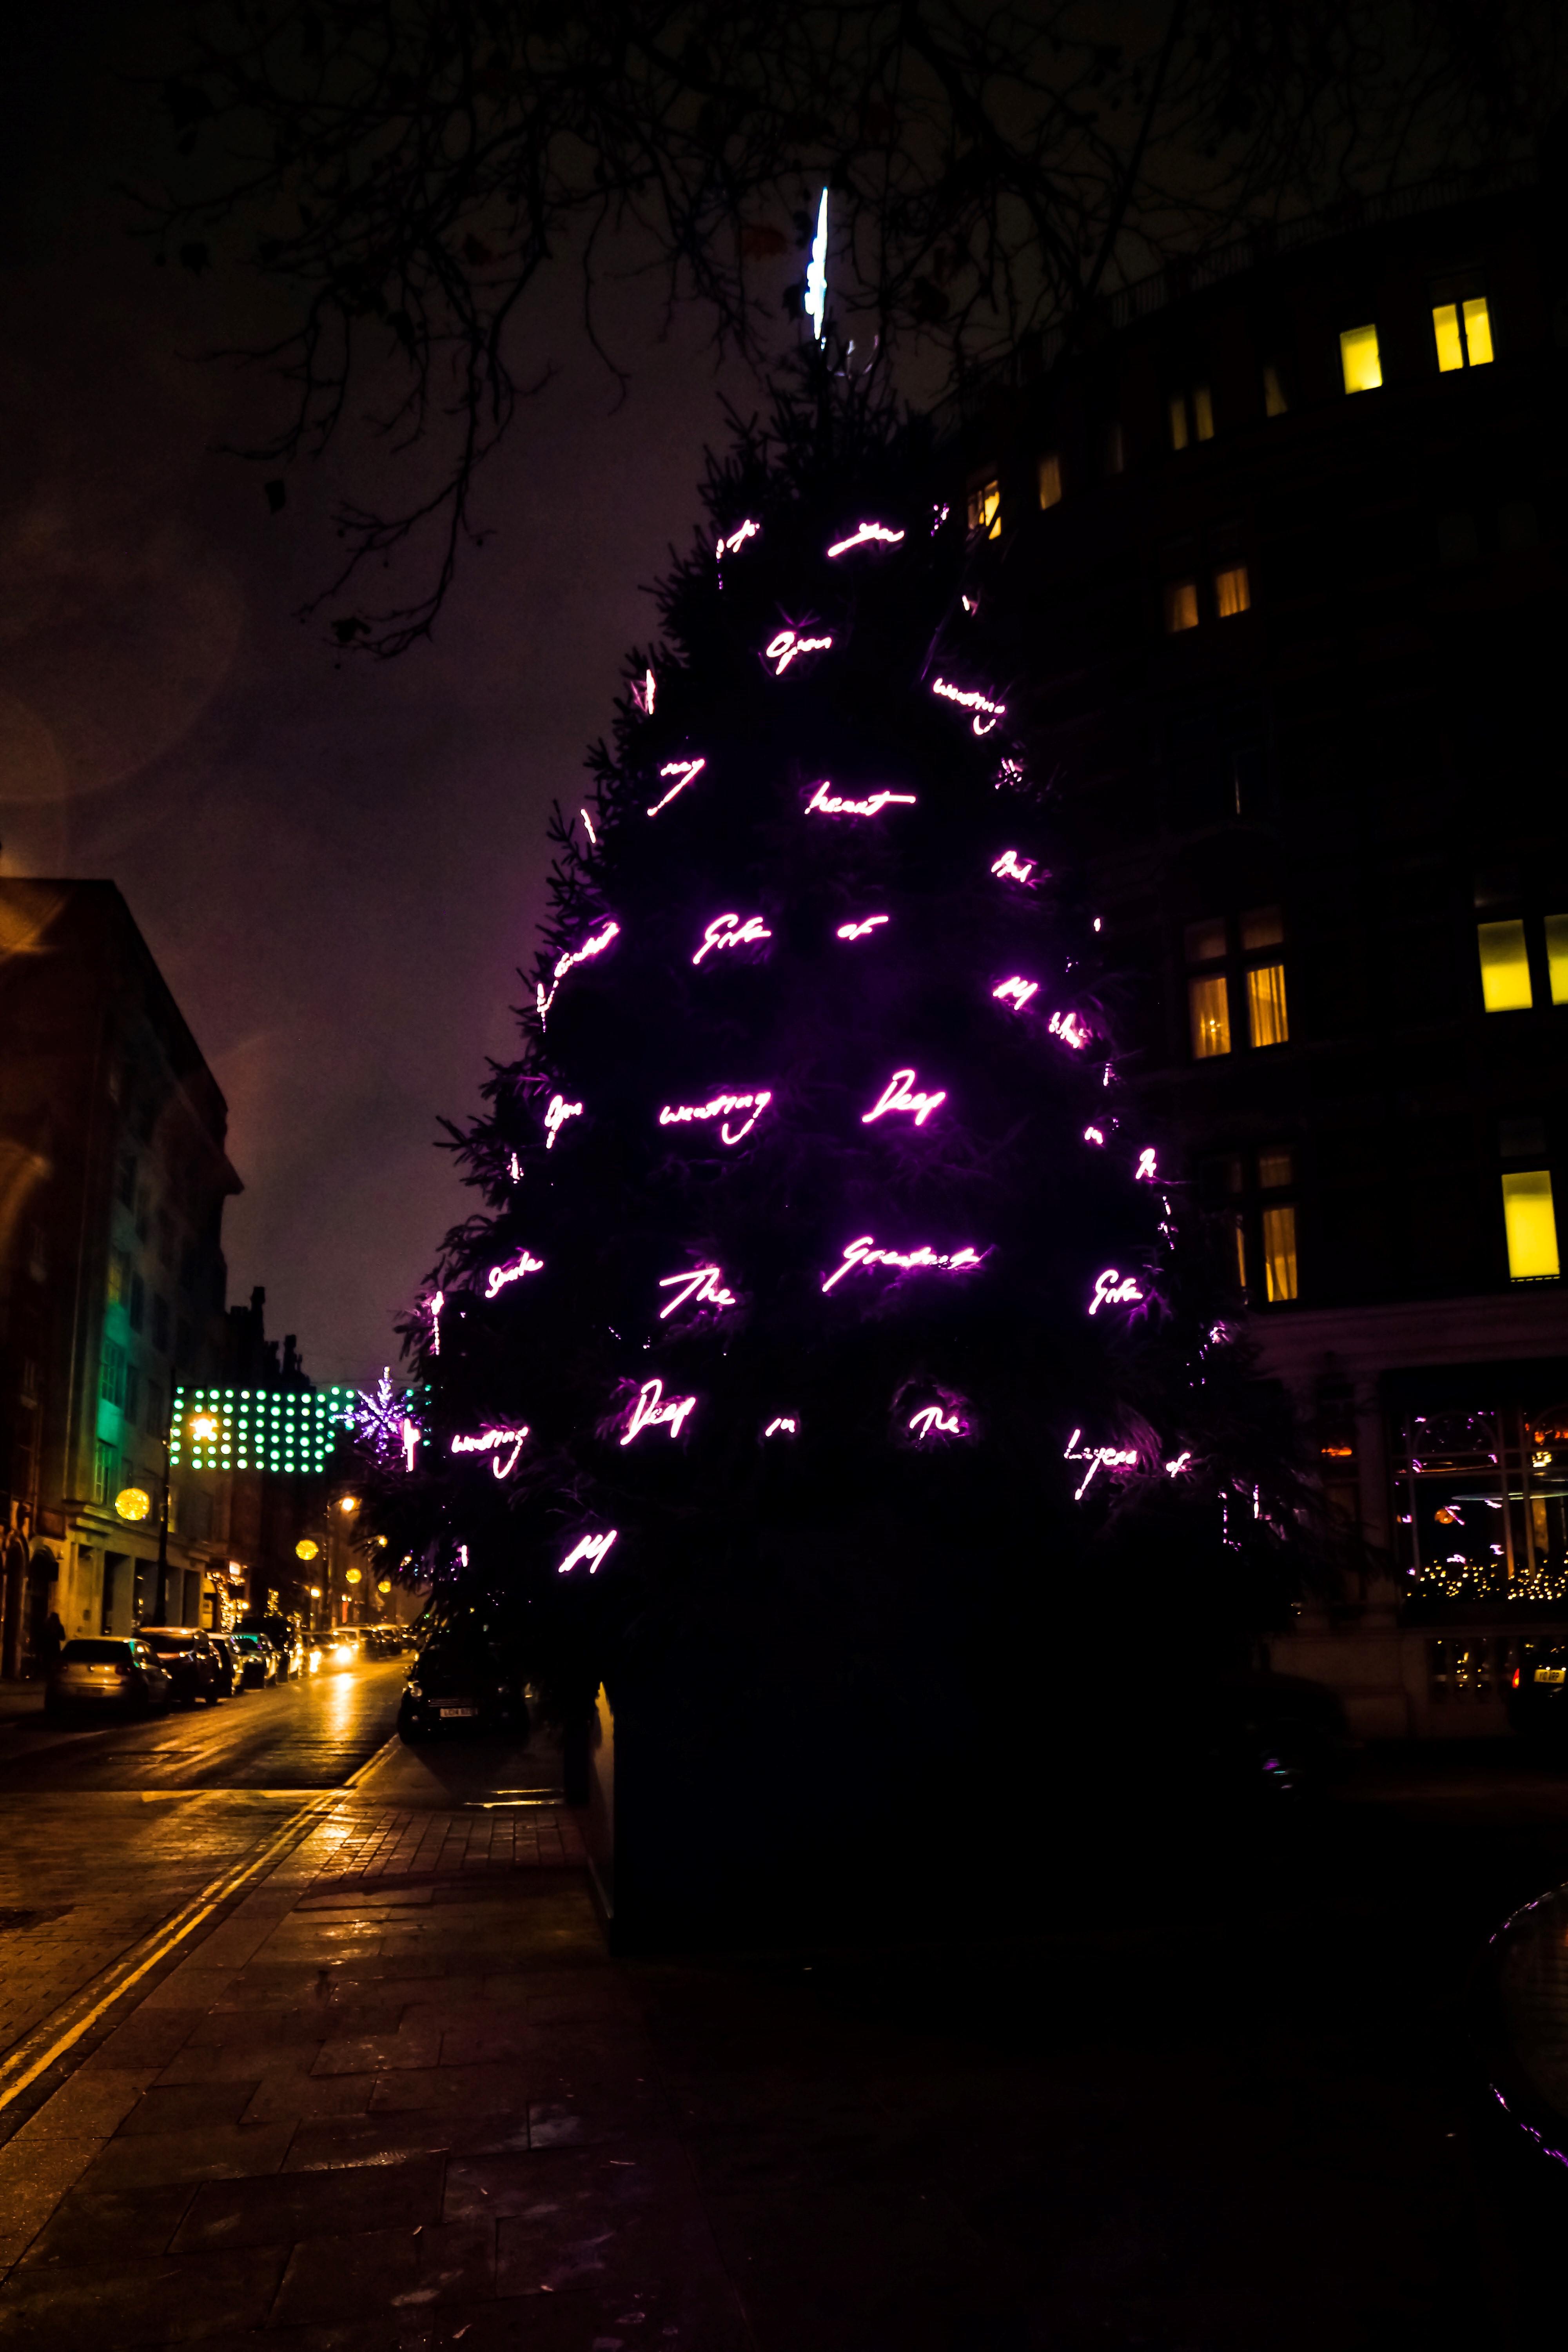 Mount Street, Mayfair and The Connaught Christmas Tree designed by Tracey Emin